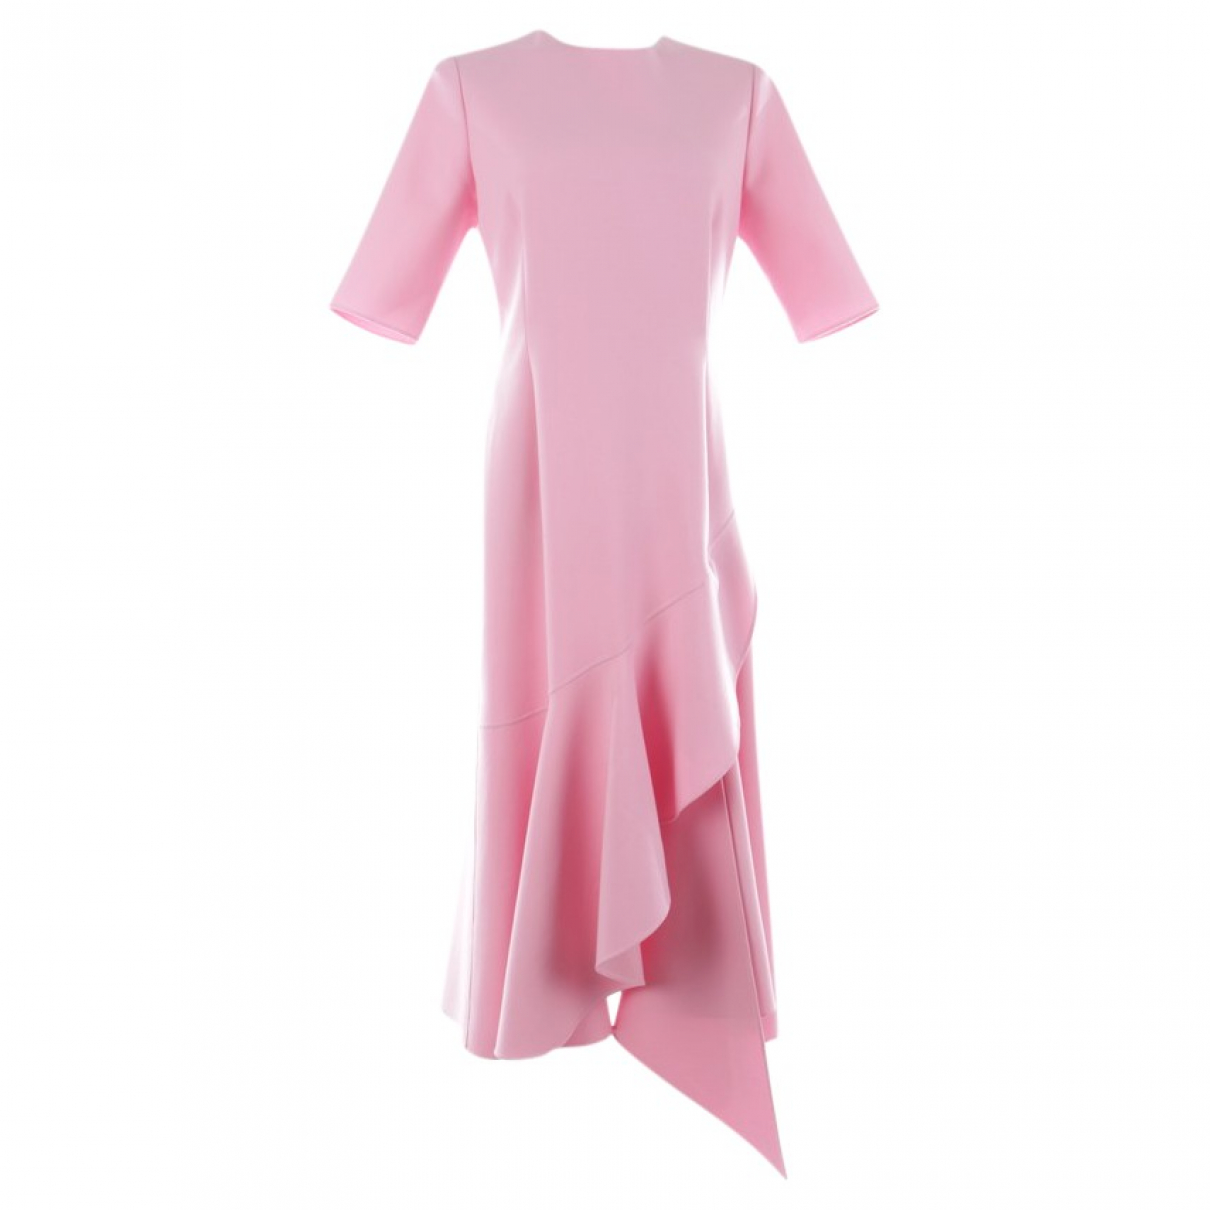 Oscar De La Renta \N Pink Cotton dress for Women 40 FR